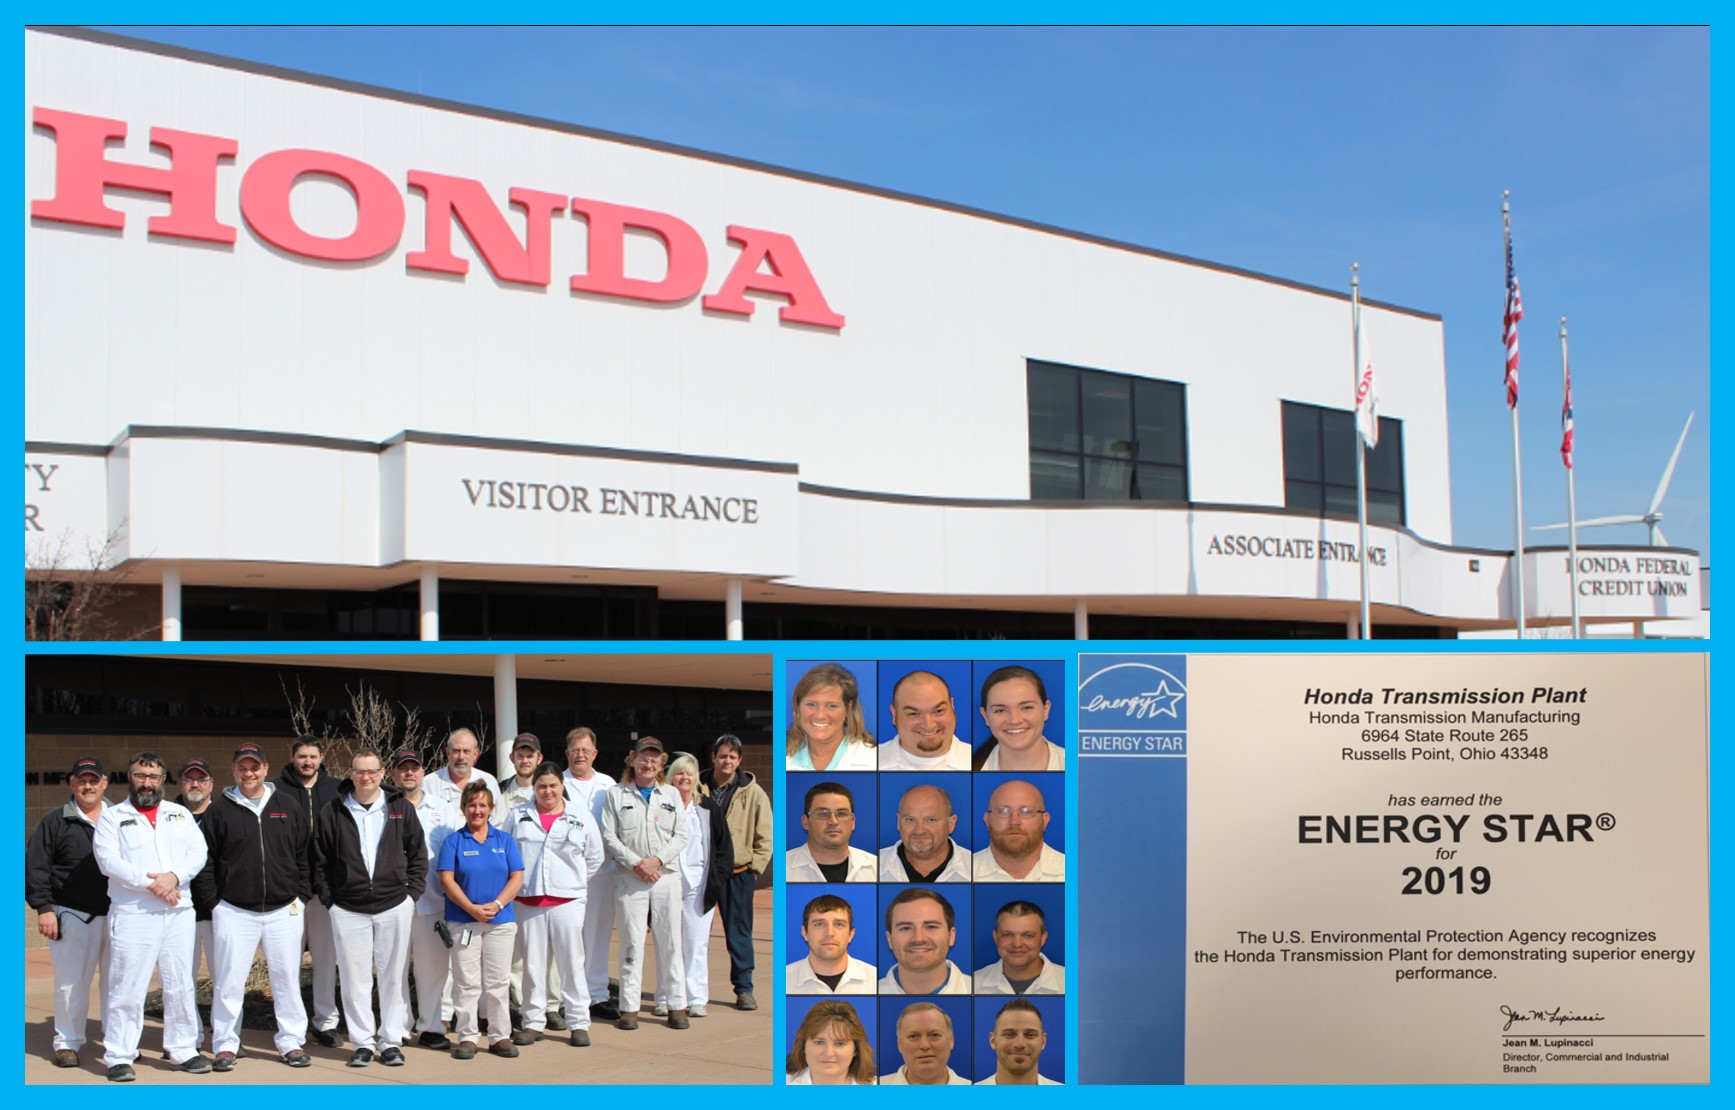 Honda transmission plant energy team in front of plant